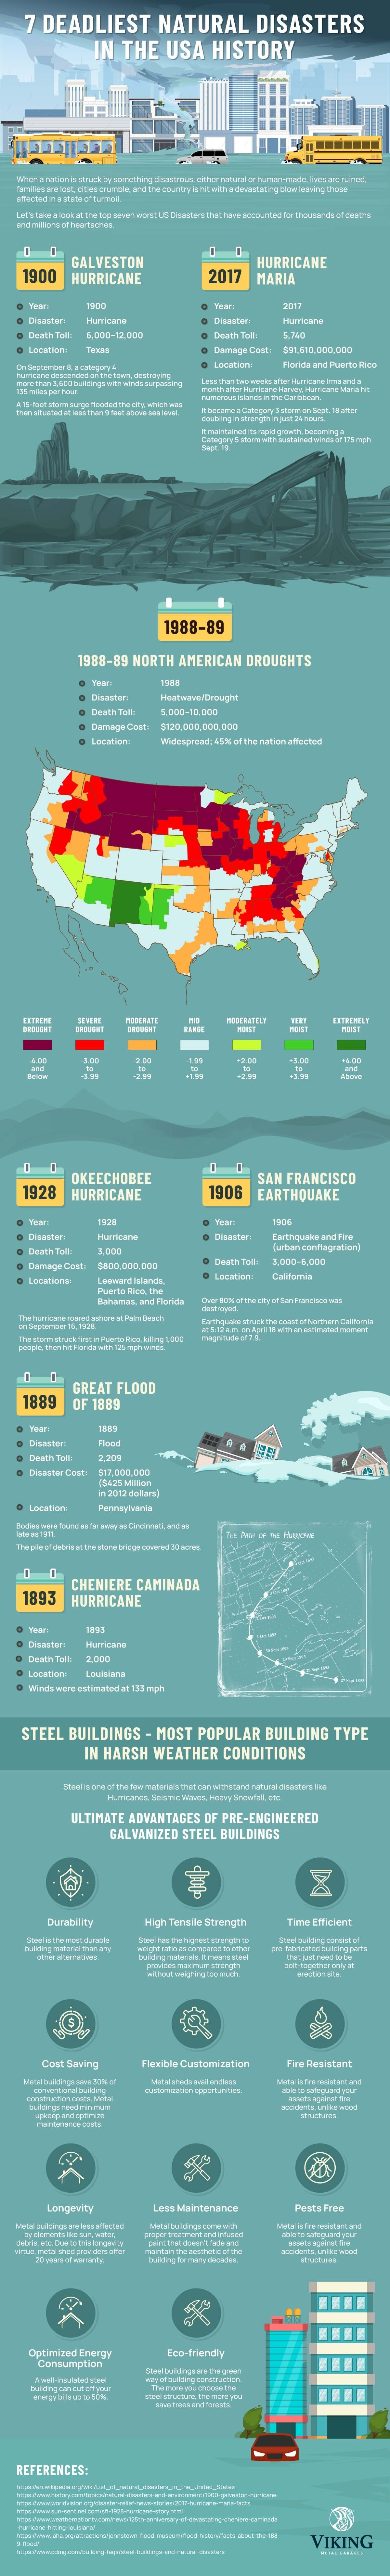 7 Deadliest Natural Disasters in the USA History #infographic